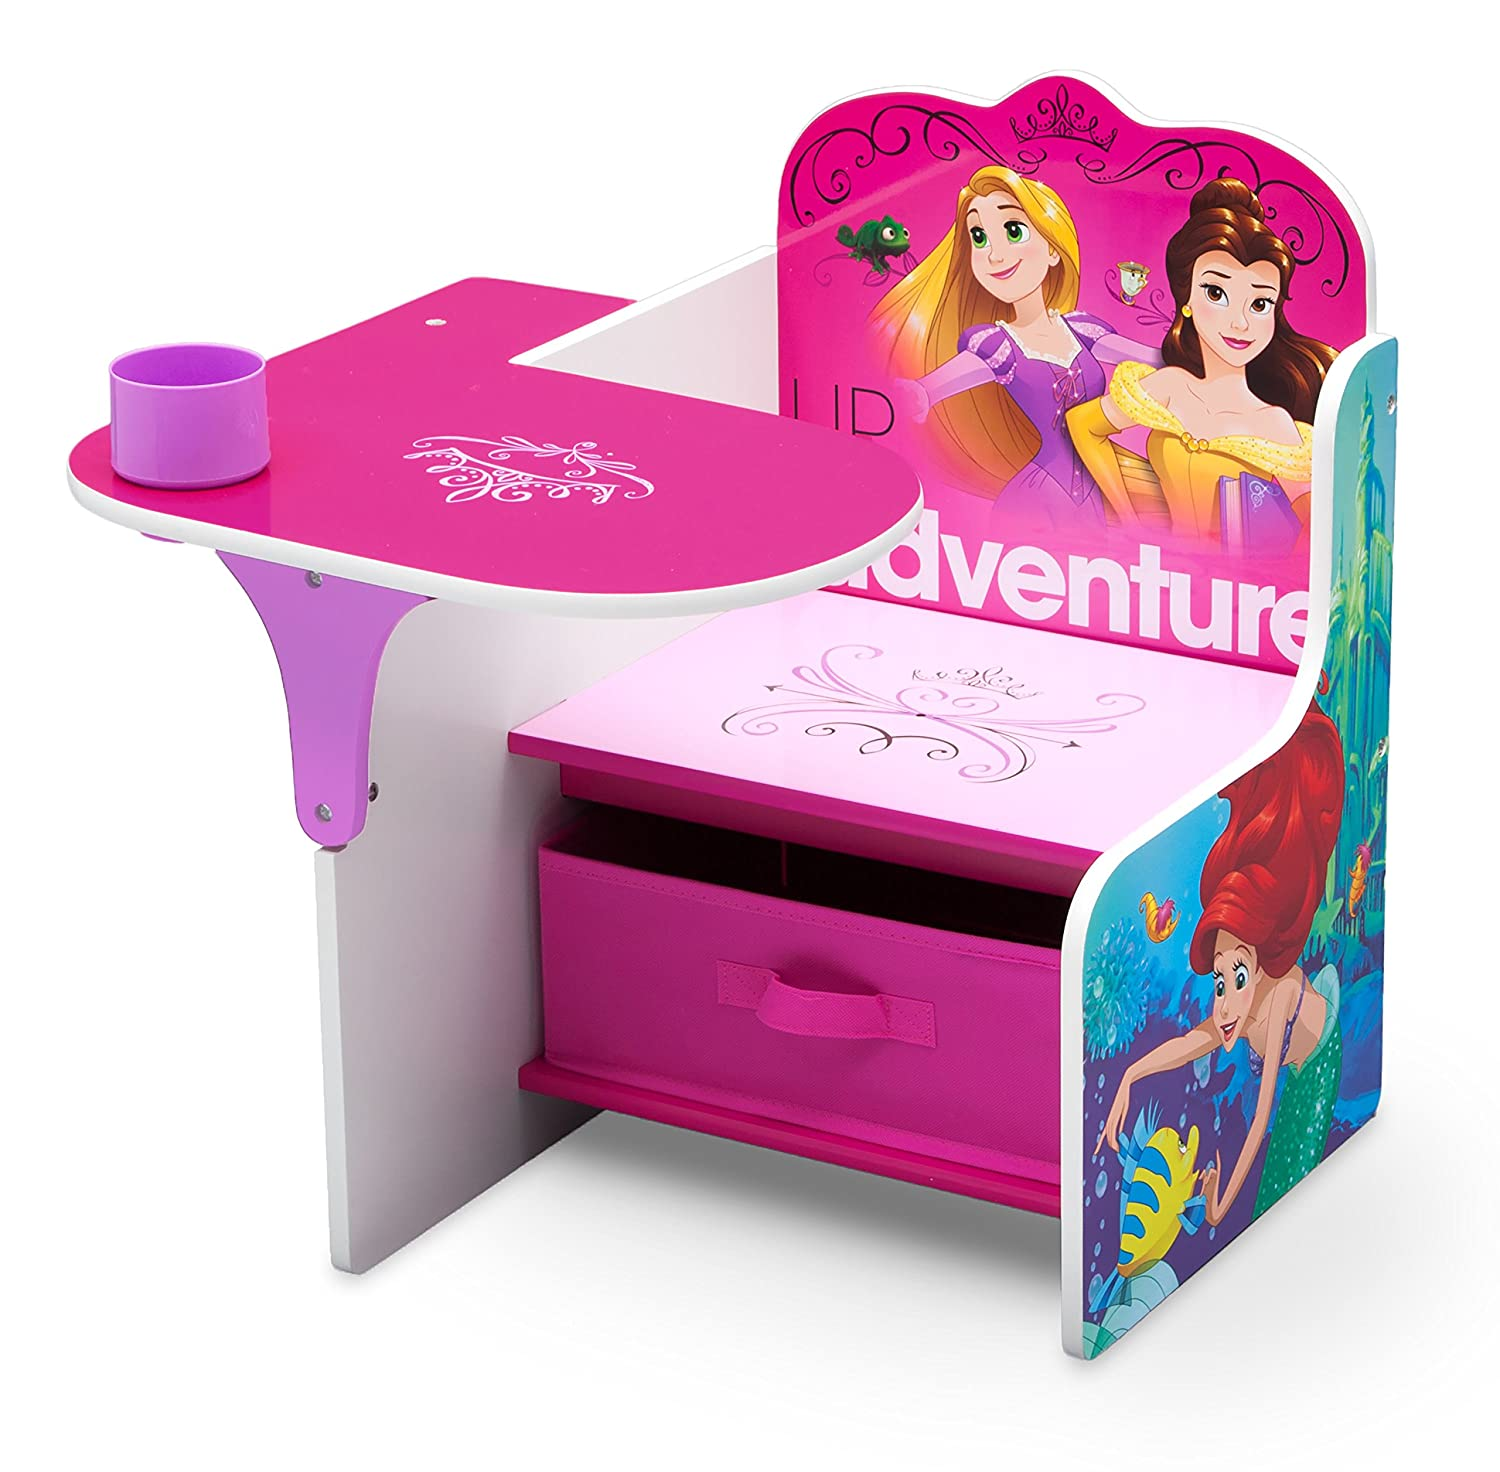 Captivating Amazon.com: Delta Children Chair Desk With Storage Bin, Disney Princess  (Friendship Adventures): Baby